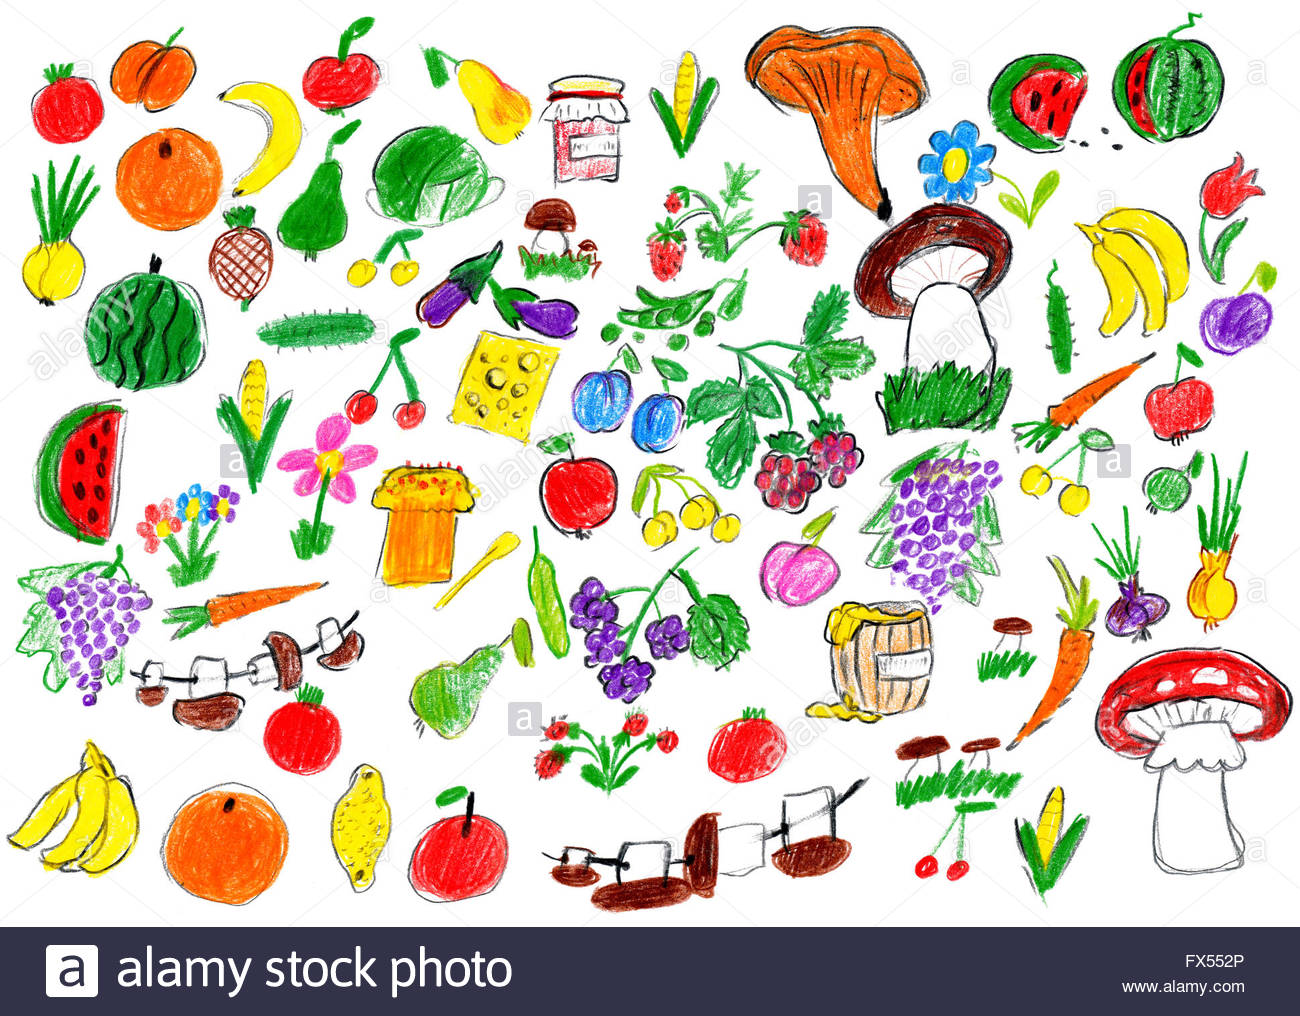 Drawing Pictures Of Fruits And Vegetables at GetDrawings.com | Free ...